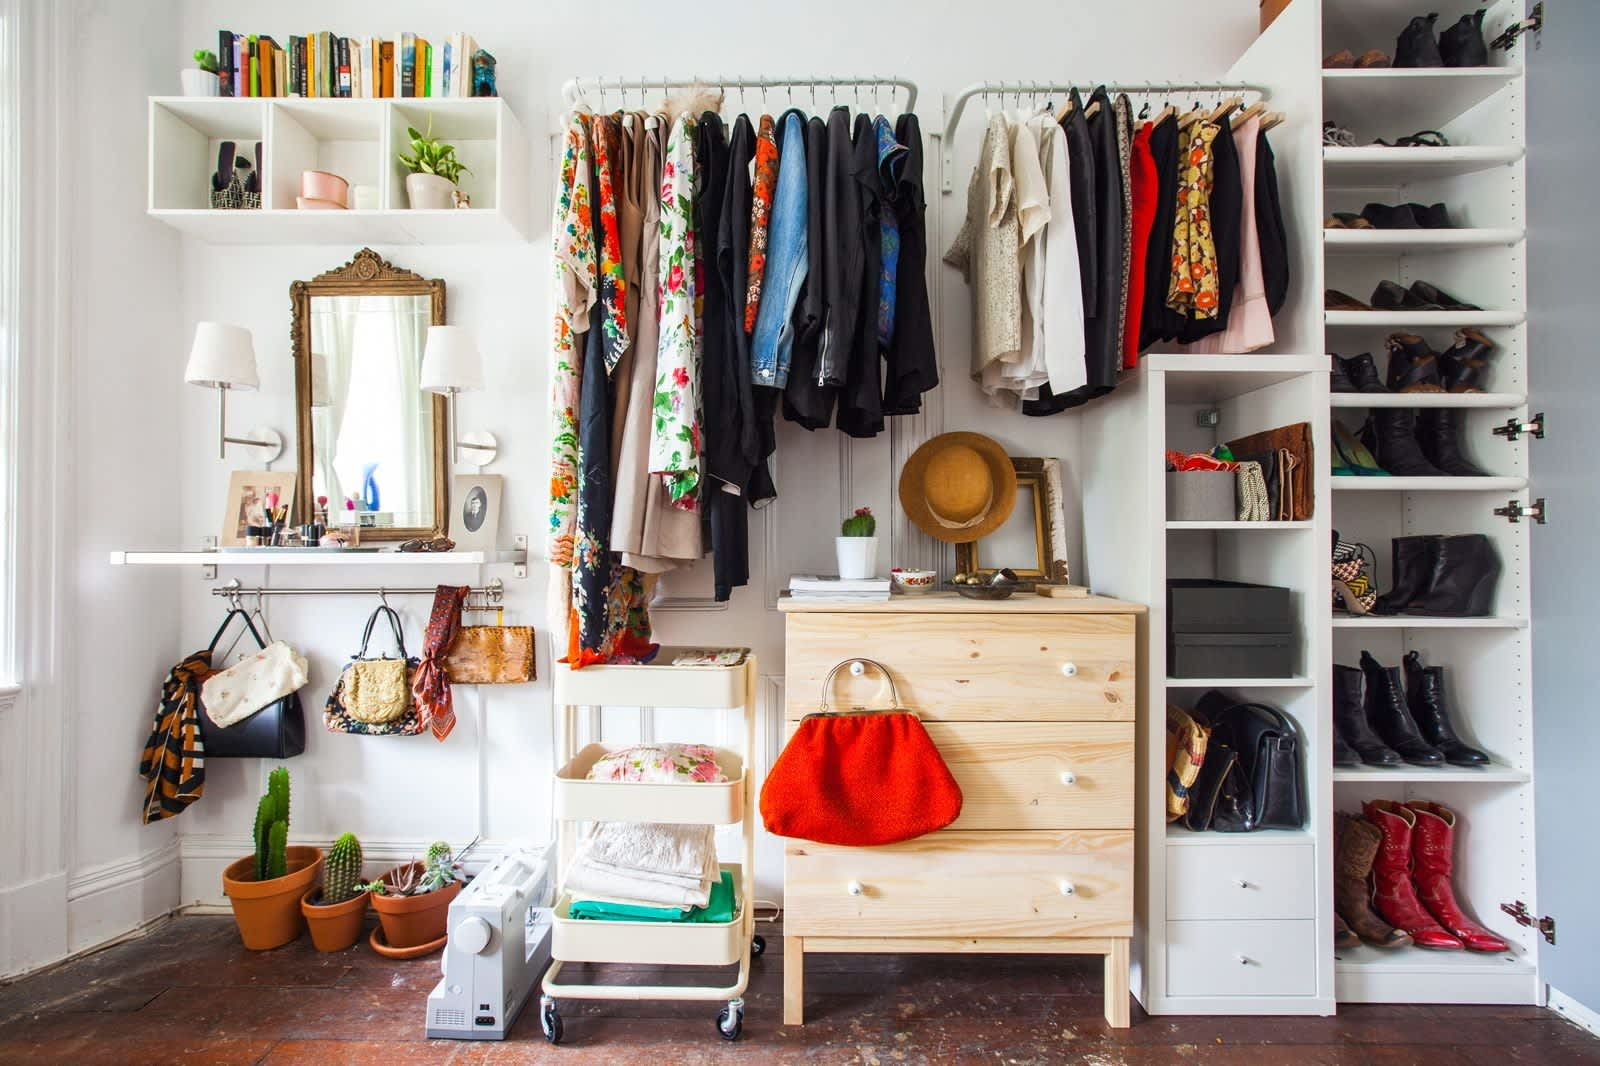 How To Make Room For Clothes Without Closet